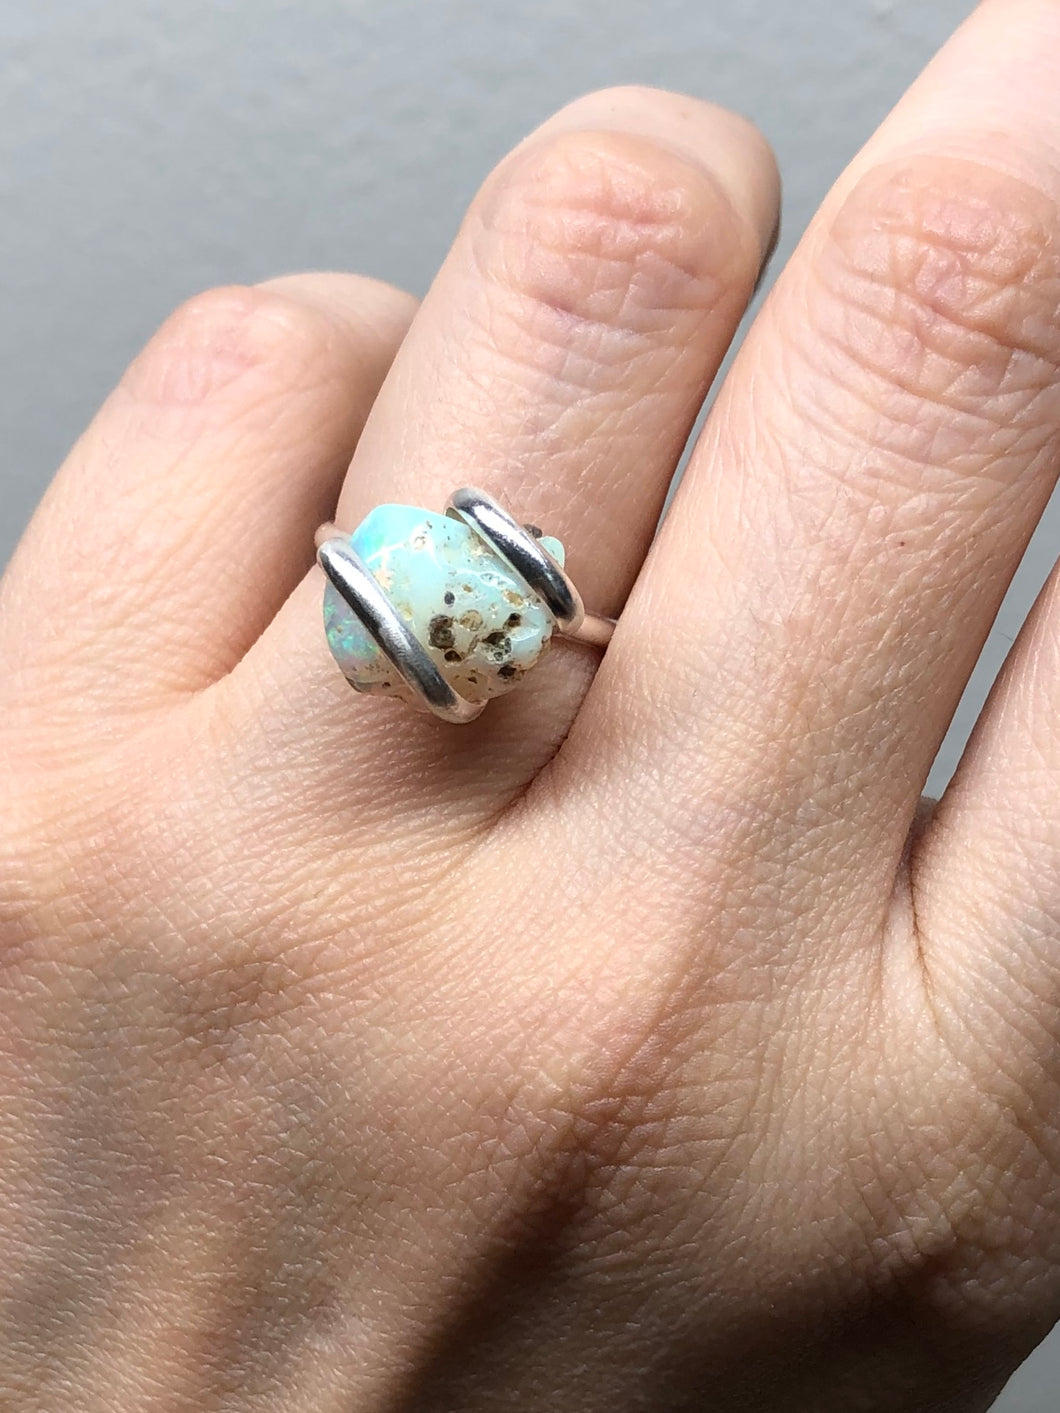 10% OFF at CHECKOUT - Adjustable Sterling Rough Opal Ring